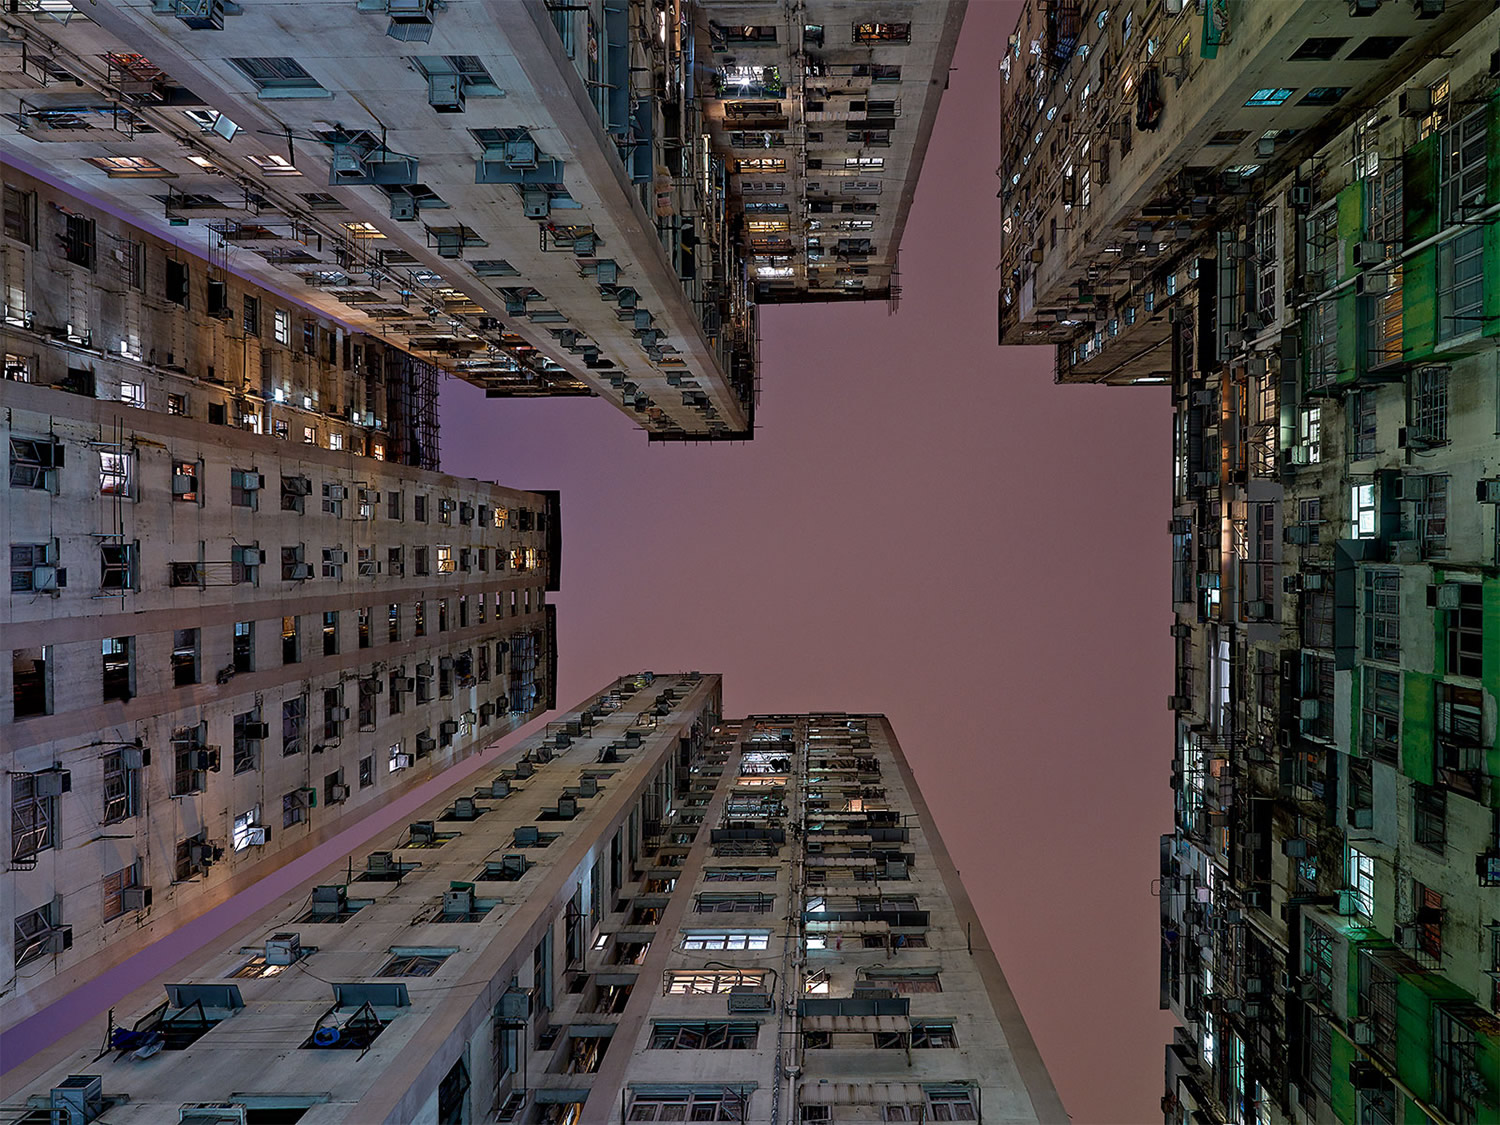 hans wilschut disorienting architectural photograph purple and orange sky